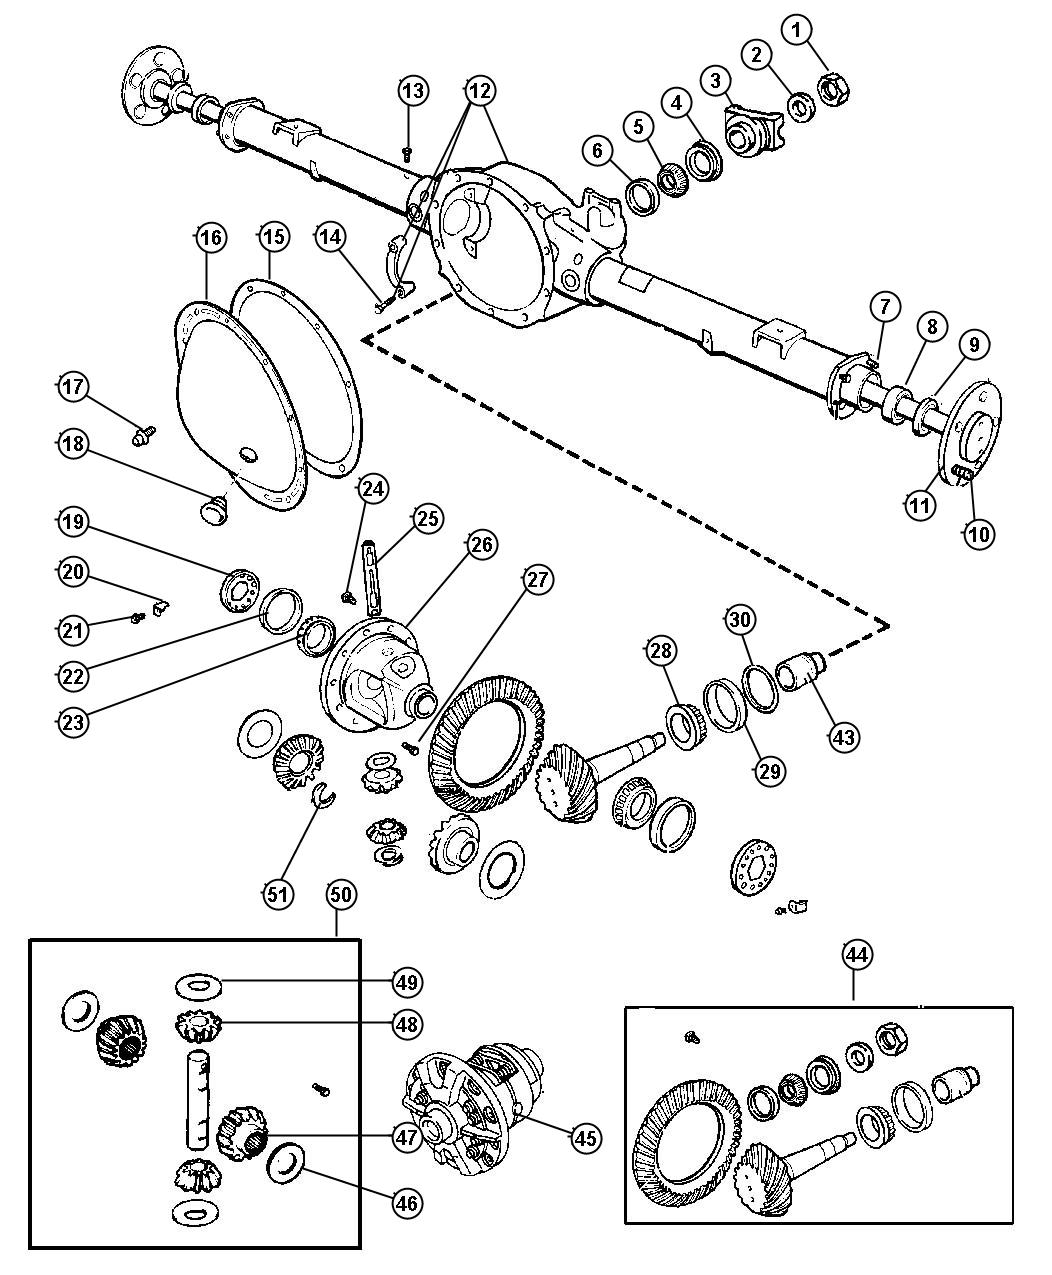 1996 Jeep Cherokee Parts Front Brakes Diagram